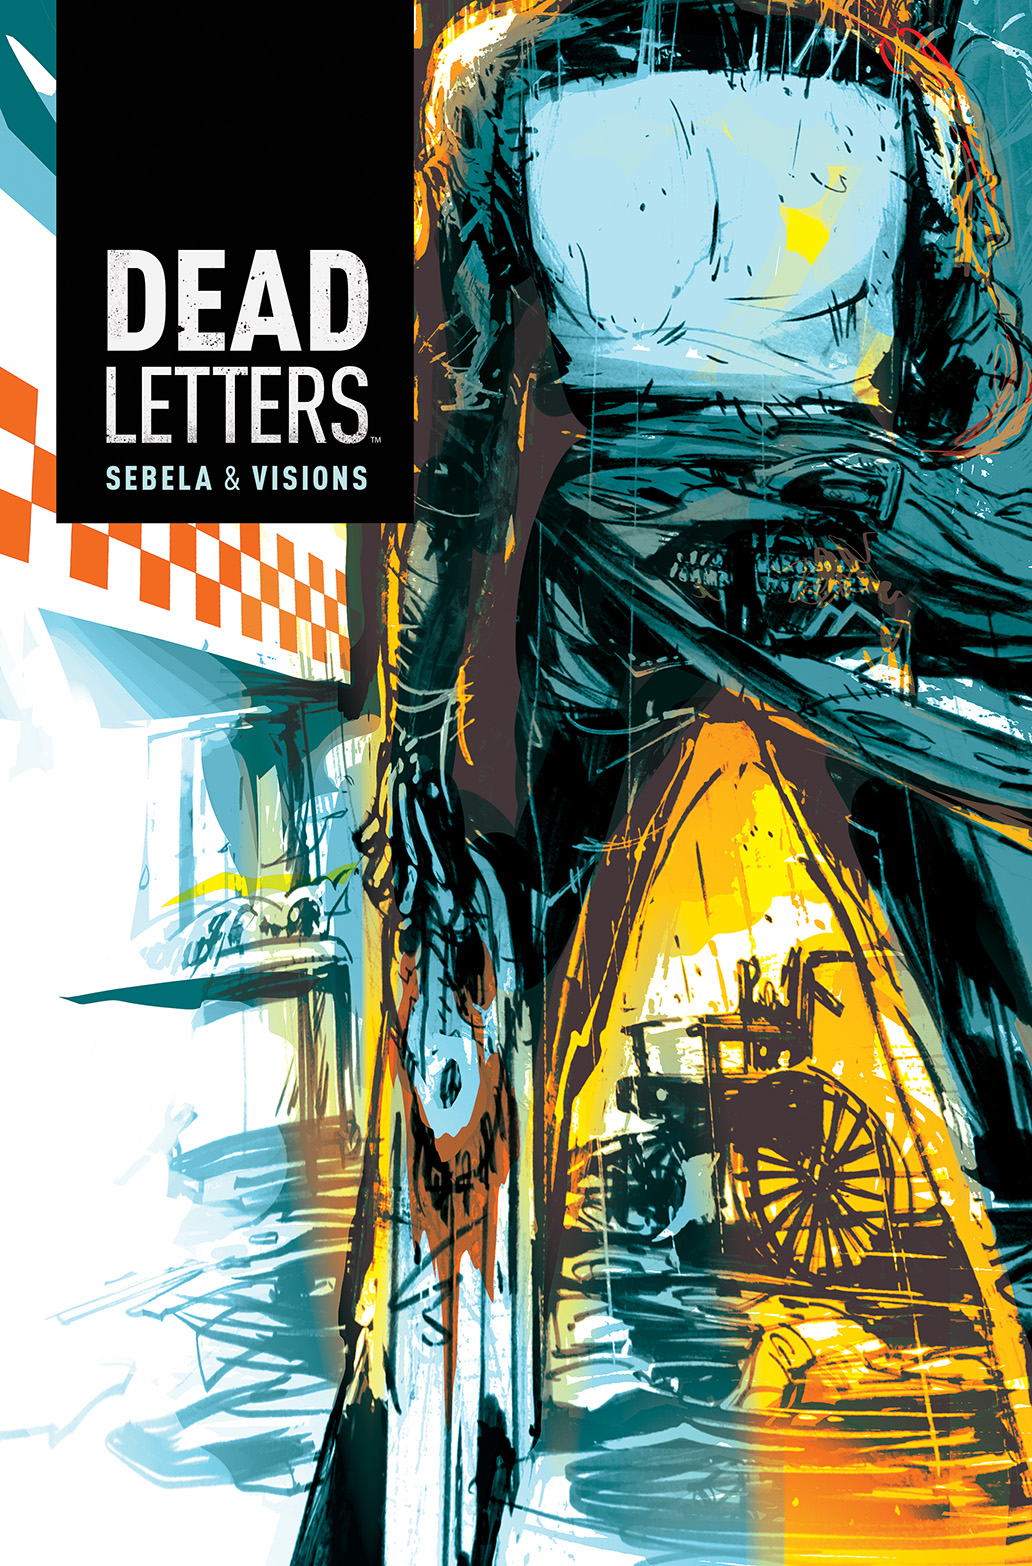 DEAD LETTERS #6 Cover